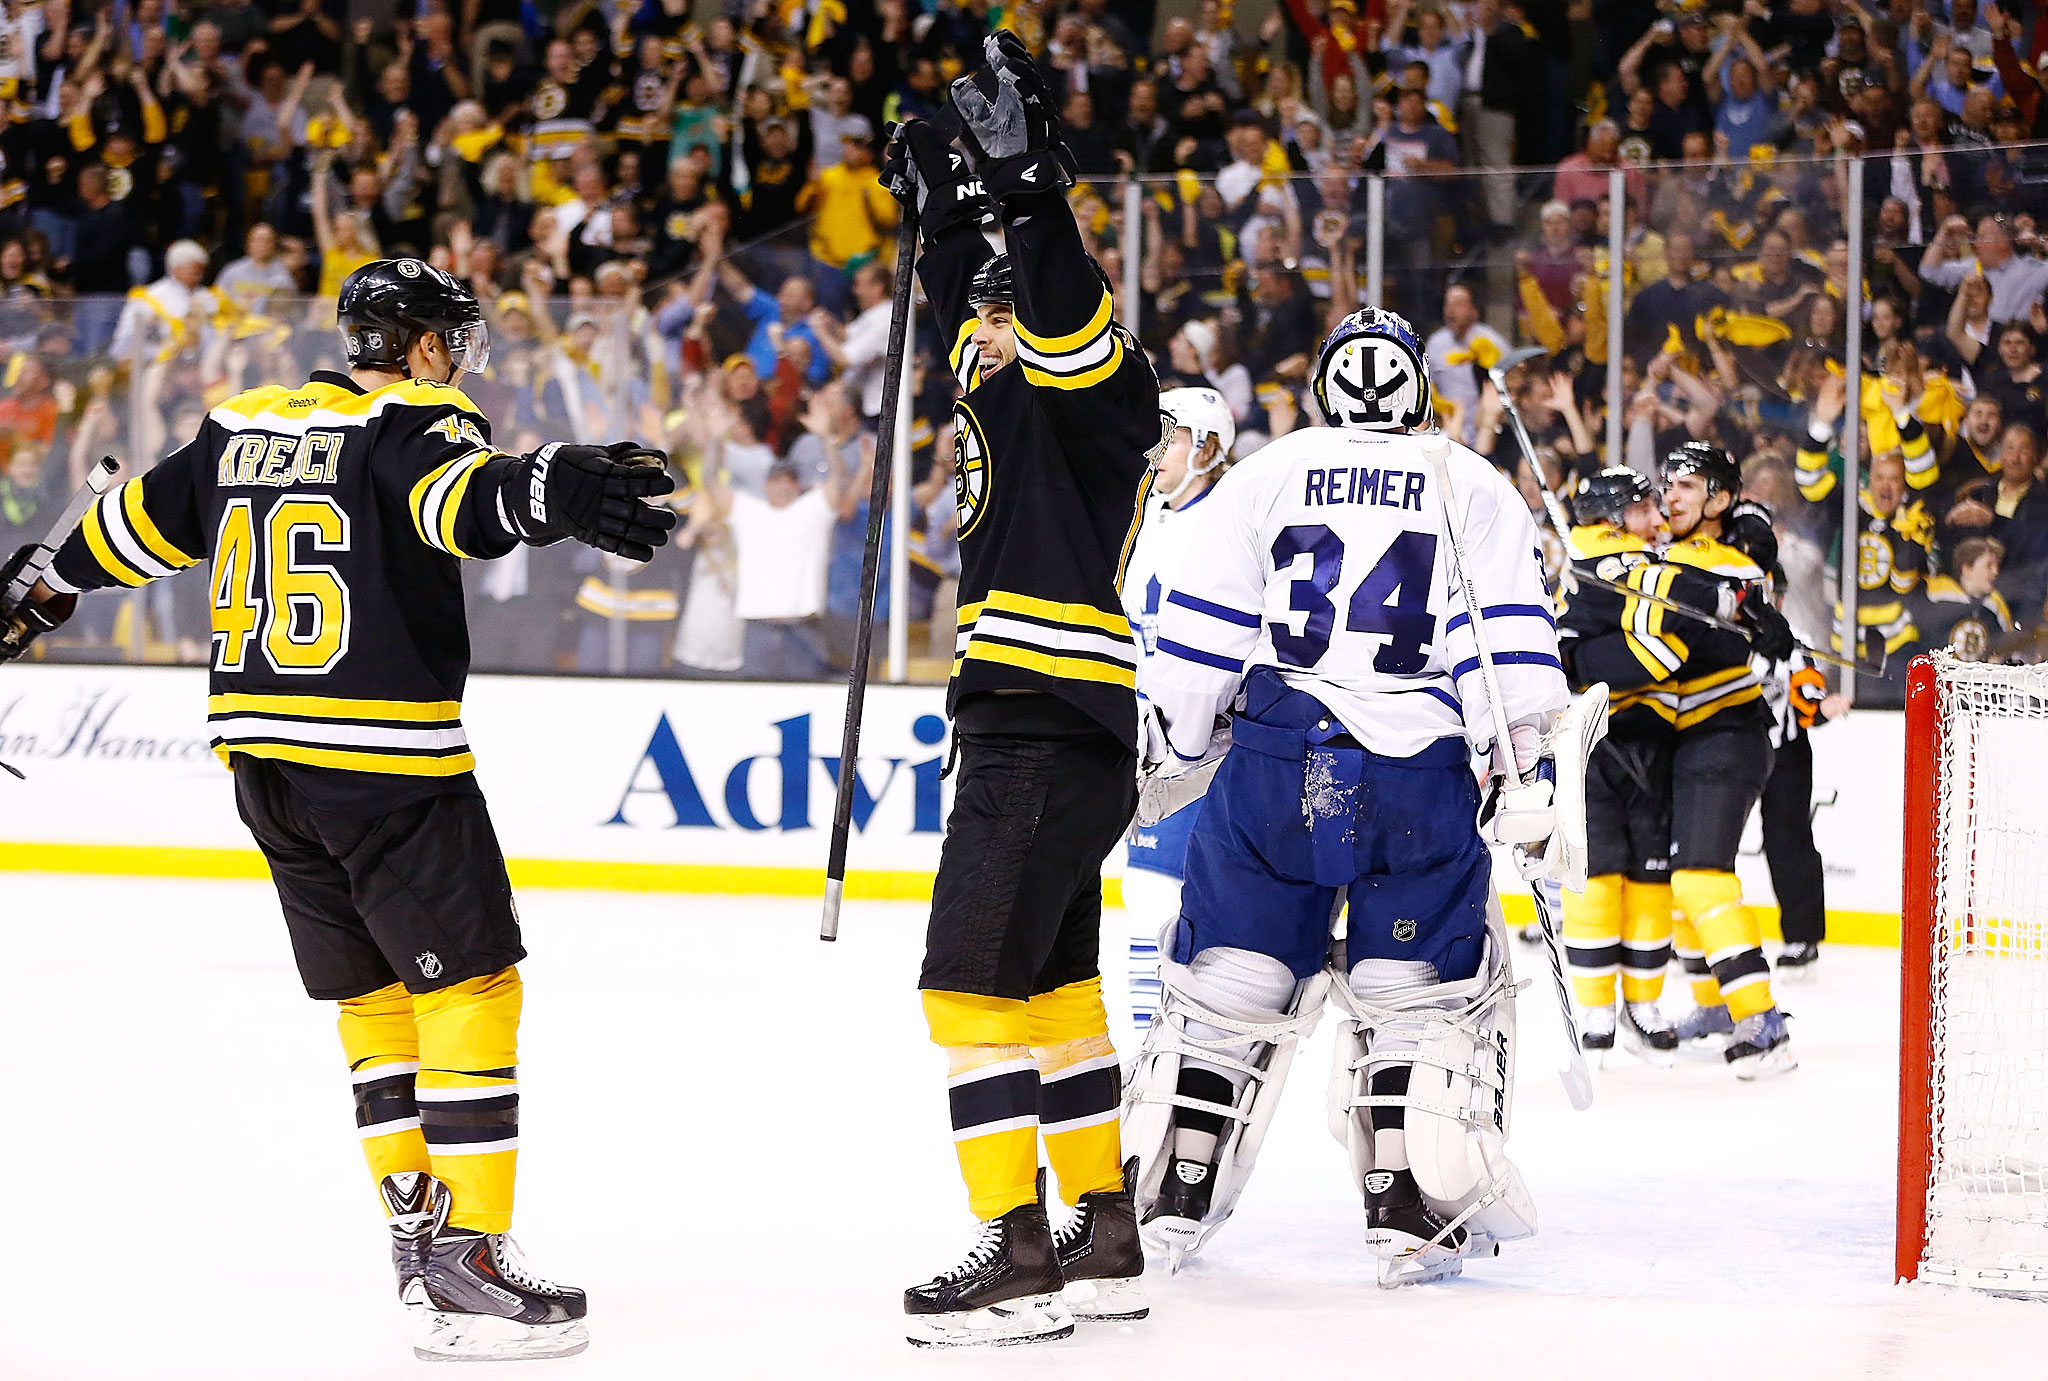 Game 1: Bruins 4, Maple Leafs 1